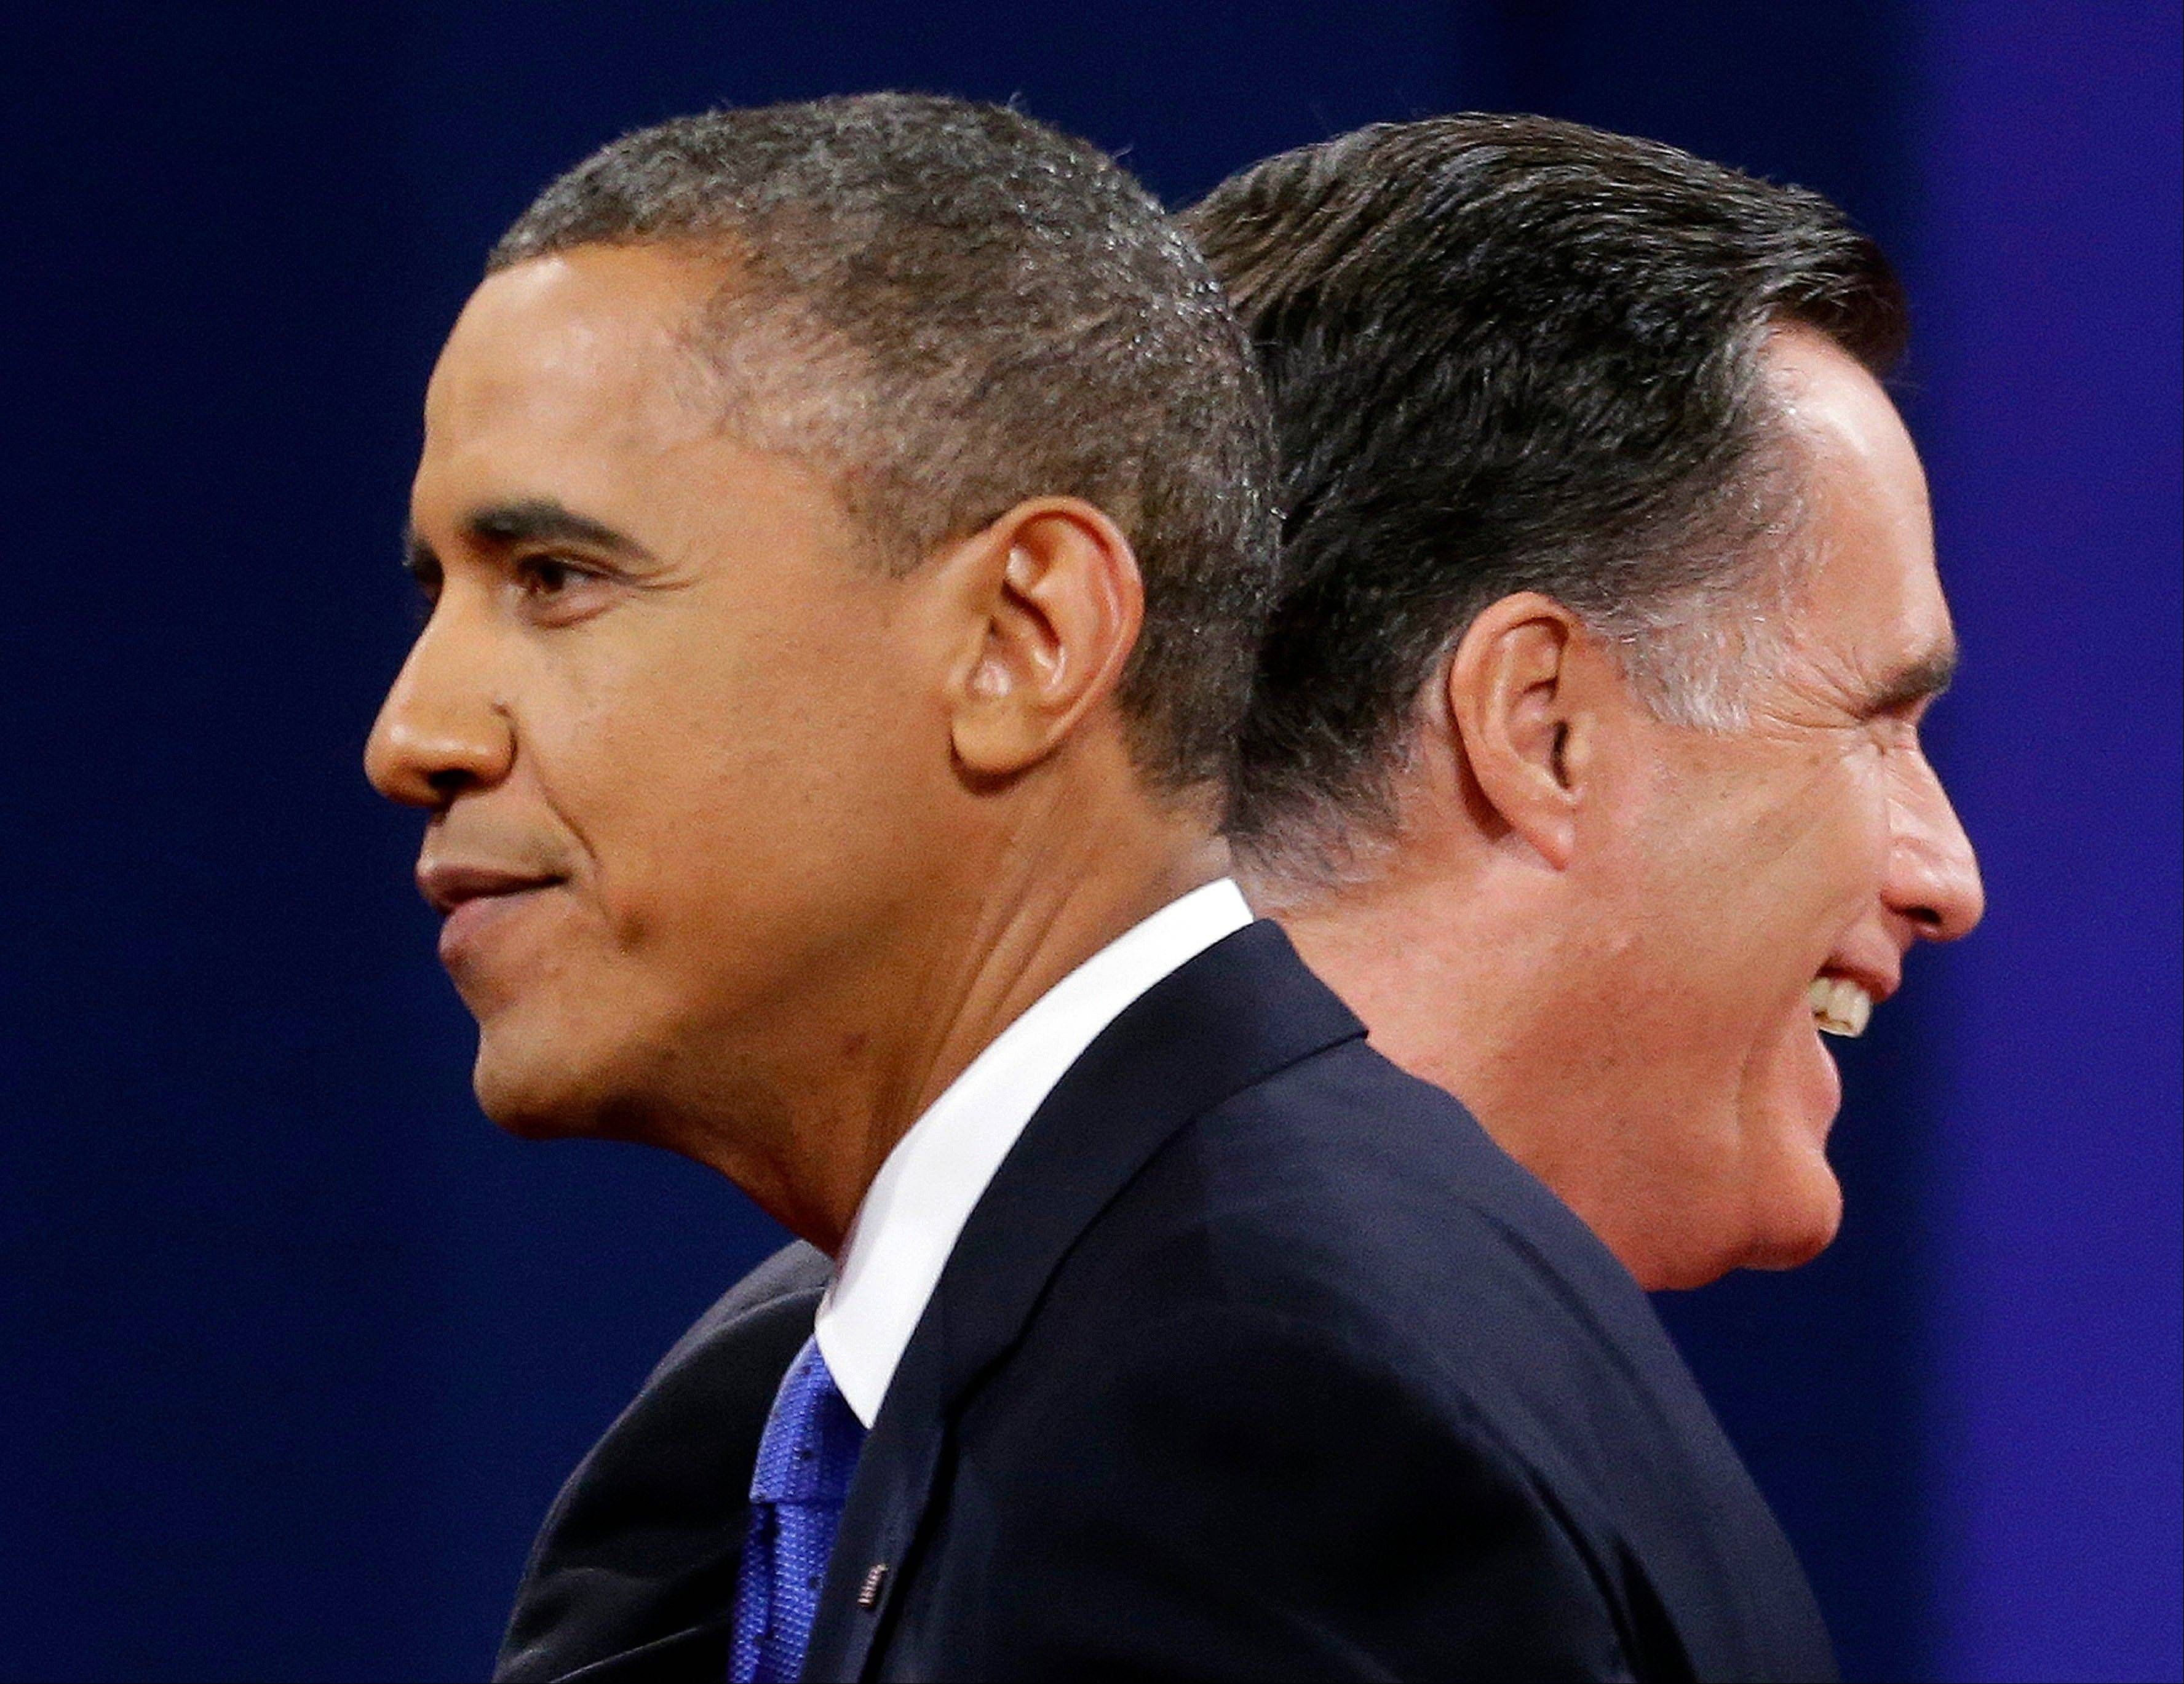 Analysis: Calm Romney pins hopes on momentum